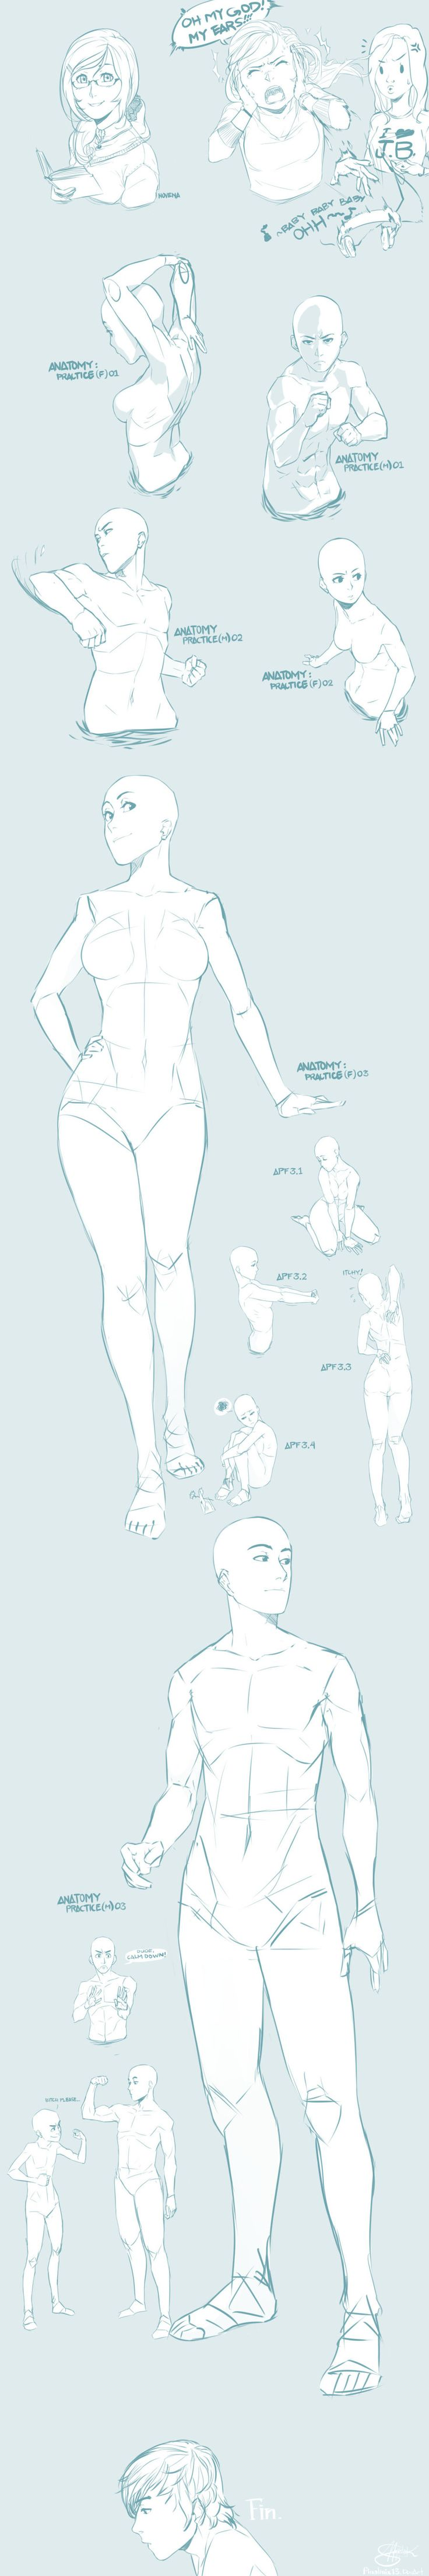 Novena and some Anatomy Practice by finalmix13 --- Amazing! And the one in the top right corner is 100% accurate.